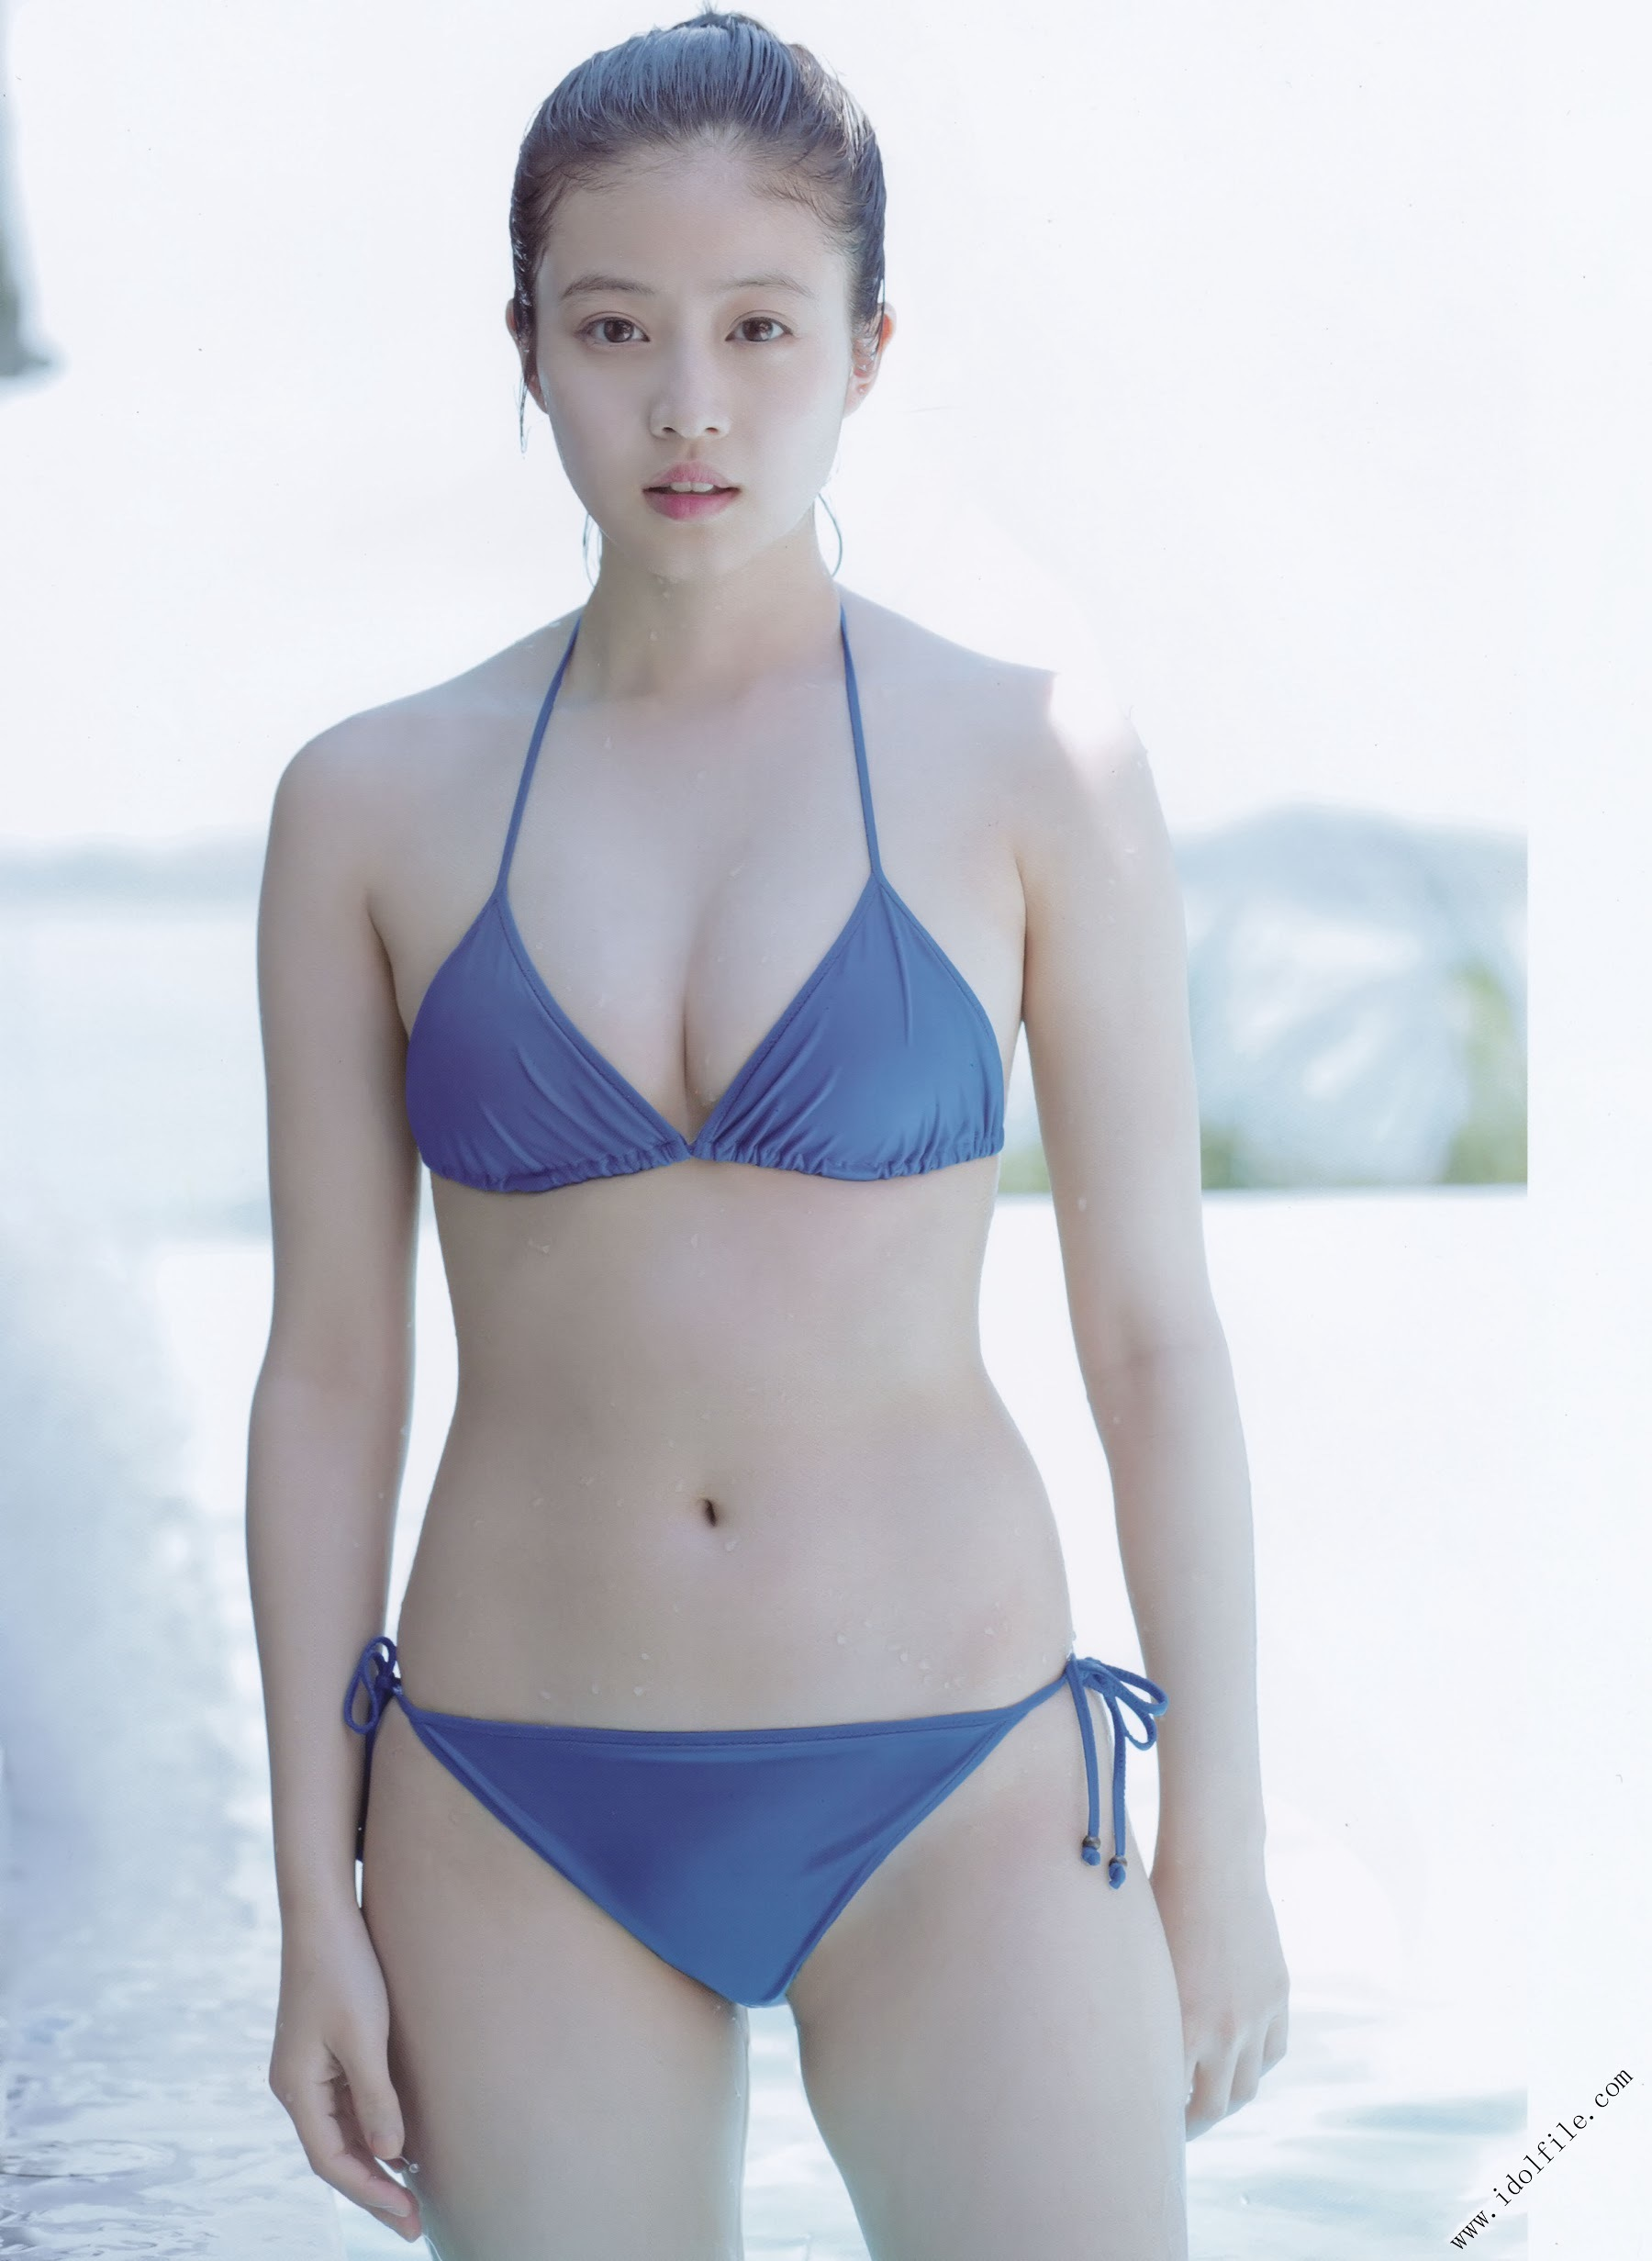 Pretty and beautiful, 22 years old and innocent Moving to the next stage as an actress Mio Imada143